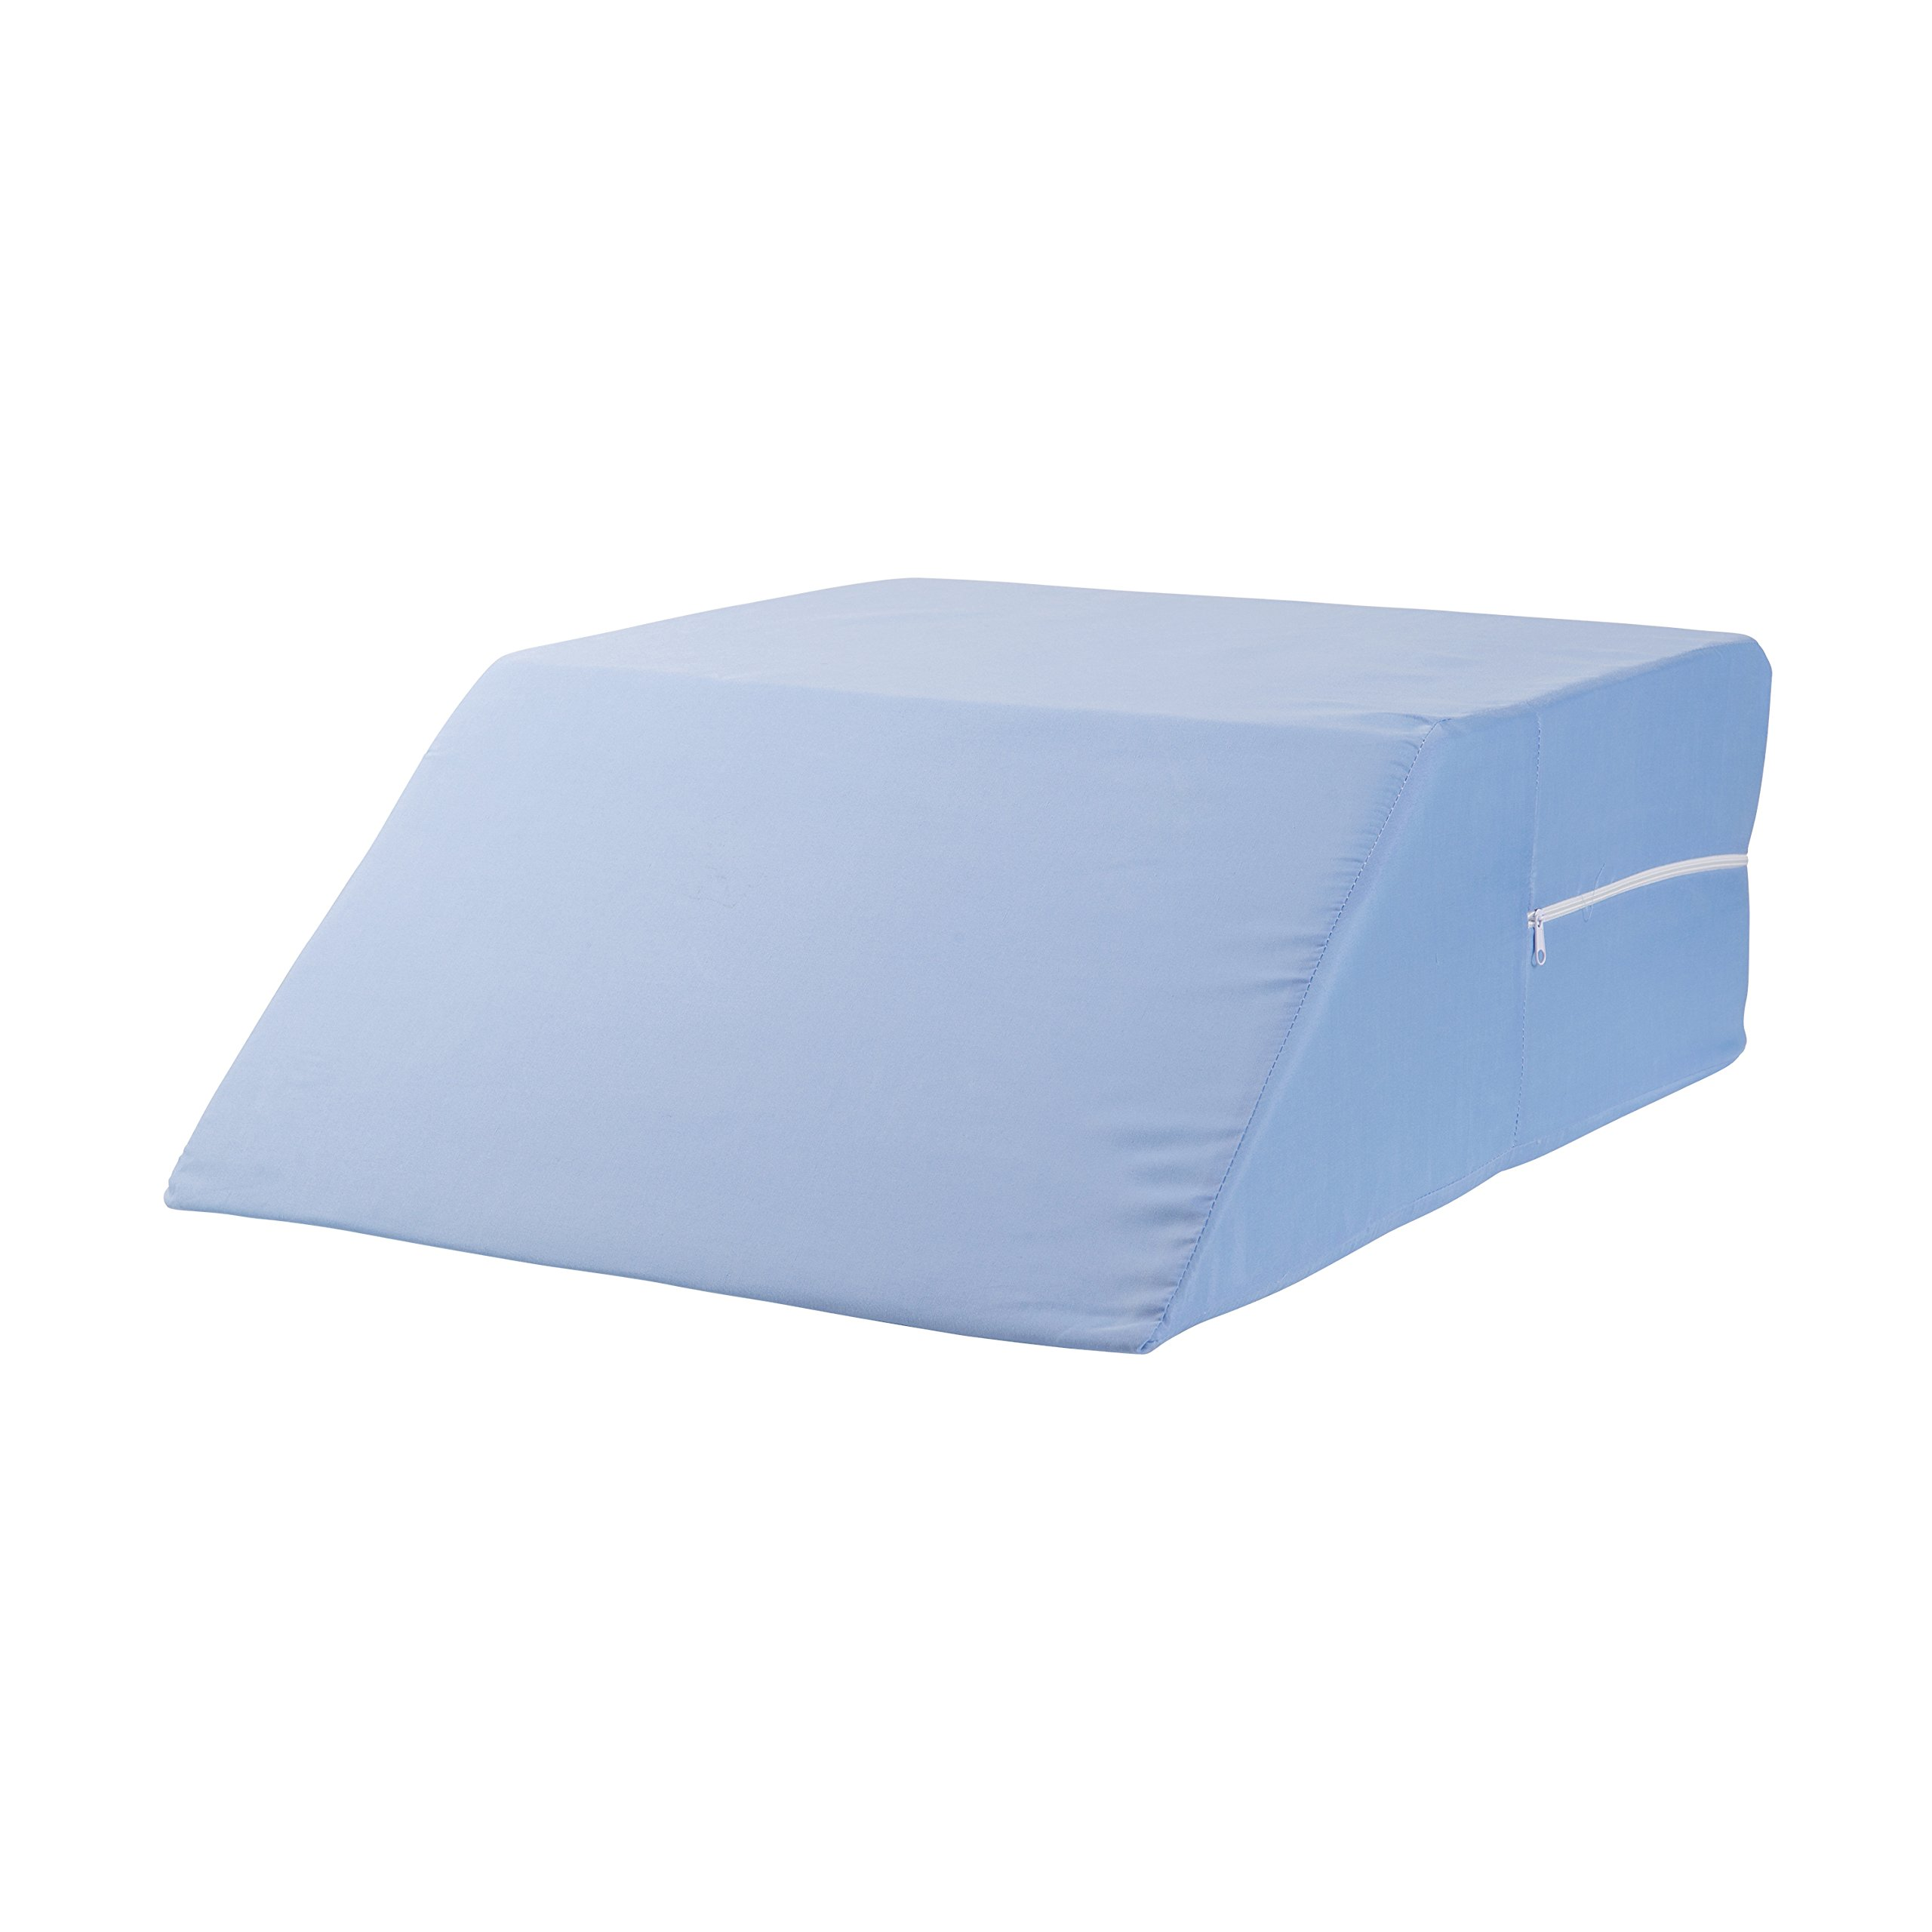 Dmi Ortho Bed Wedge Supportive Foam Leg Rest Cushion